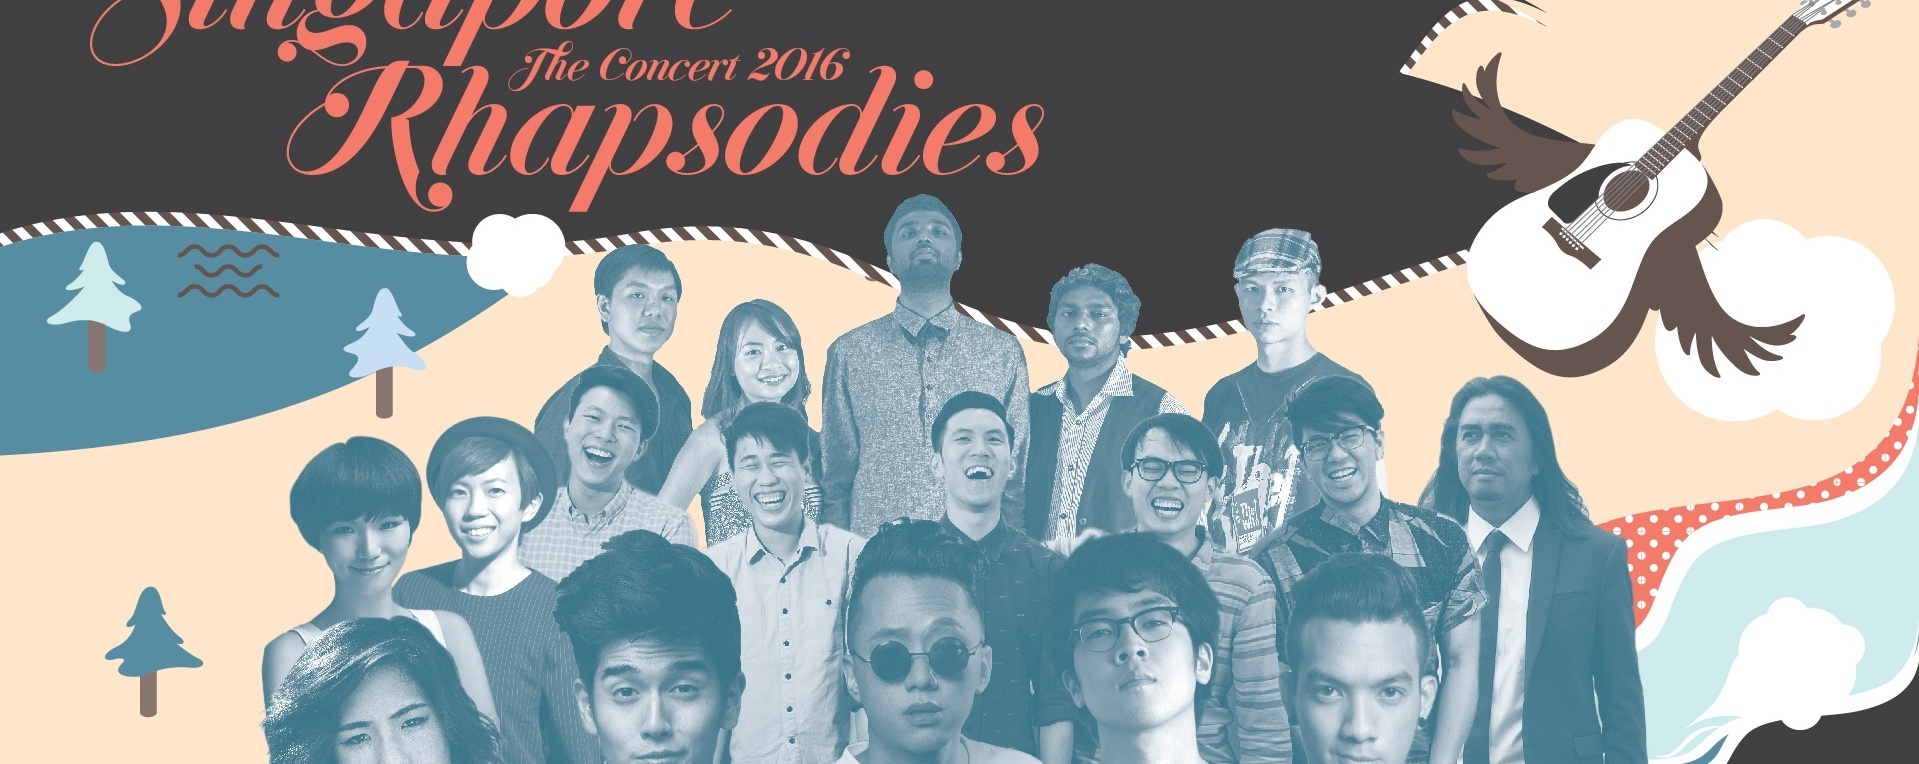 Singapore Rhapsodies - The Concert 2016